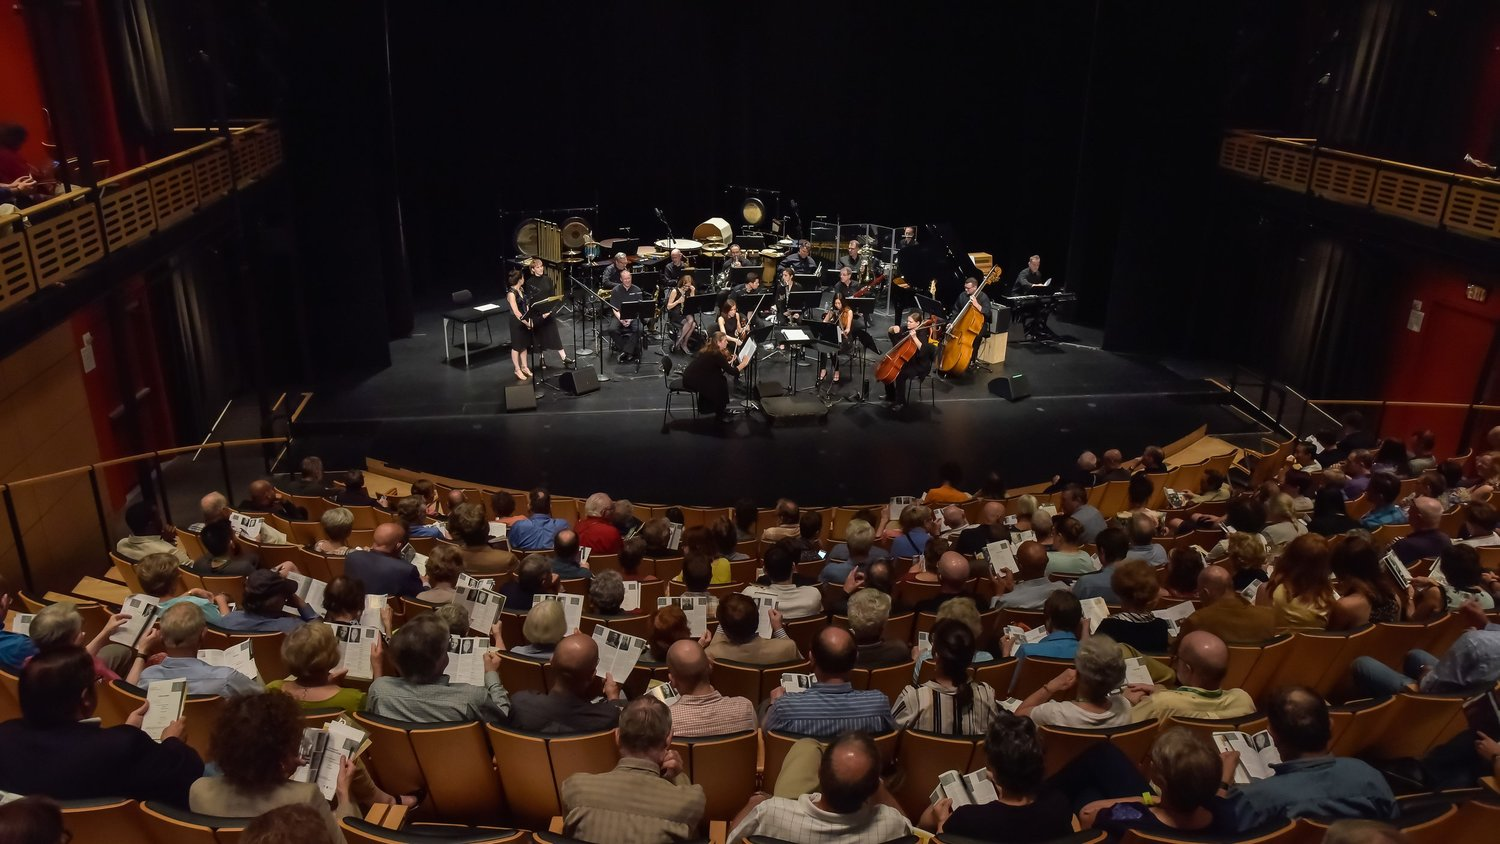 "Speak Out, Justice! - David Alan Miller and musicians of the Albany Symphony premiere four new melodrams for chamber orchestra and narrator, each inspired by notable Americans who advanced ""liberty and justice for all.""Evan Mack: A Little More Perfect Inspired by Justice Kennedy's Supreme Court Ruling on Same Sex MarriageJorge Sosa: I Dissent Inspired by Supreme Court Justice Sonia SotomayorMolly Joyce: Past and Present Inspired by pioneering journalist Nellie Bly and her reporting on the conditions at the Blackwell Island mental institutionBora Yoon: The Master's Tools Will Never Dismantle The Master's HouseInspired by text from NYC-born Audre Lorde's famous essay 'The Master's Tools Will Never Dismantle The Master's House'.Judy Bozone: MOONSHOTInspired by native New Yorker and congresswoman Alexandria Ocasio-Cortez and her recent work on the Green New Deal.TICKETS ARE $20 